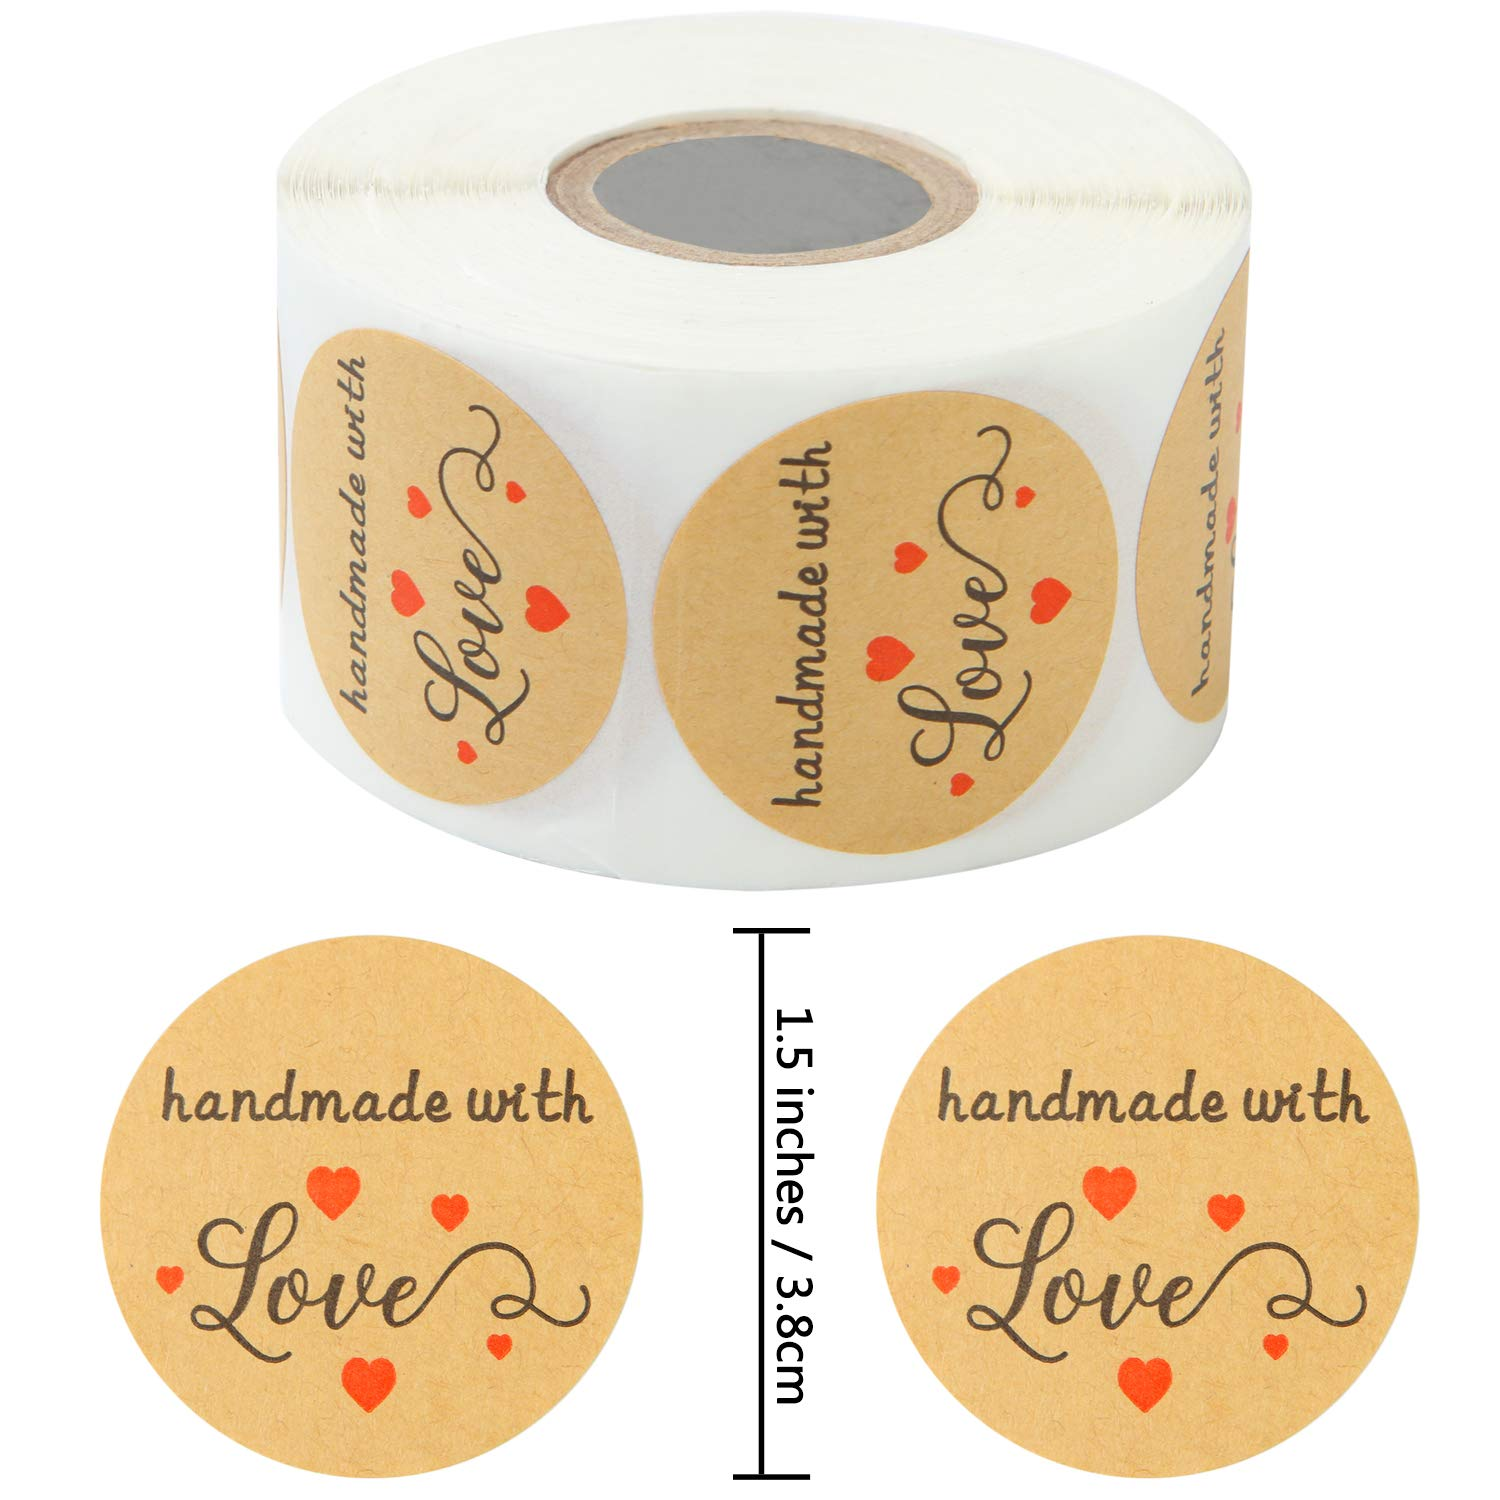 Crafts or DIY Projects 1.5 Inches Elcoho 600 Pieces Kraft Handmade with Love Stickers Round Handmade Adhesive Stickers Labels Roll for Gifts